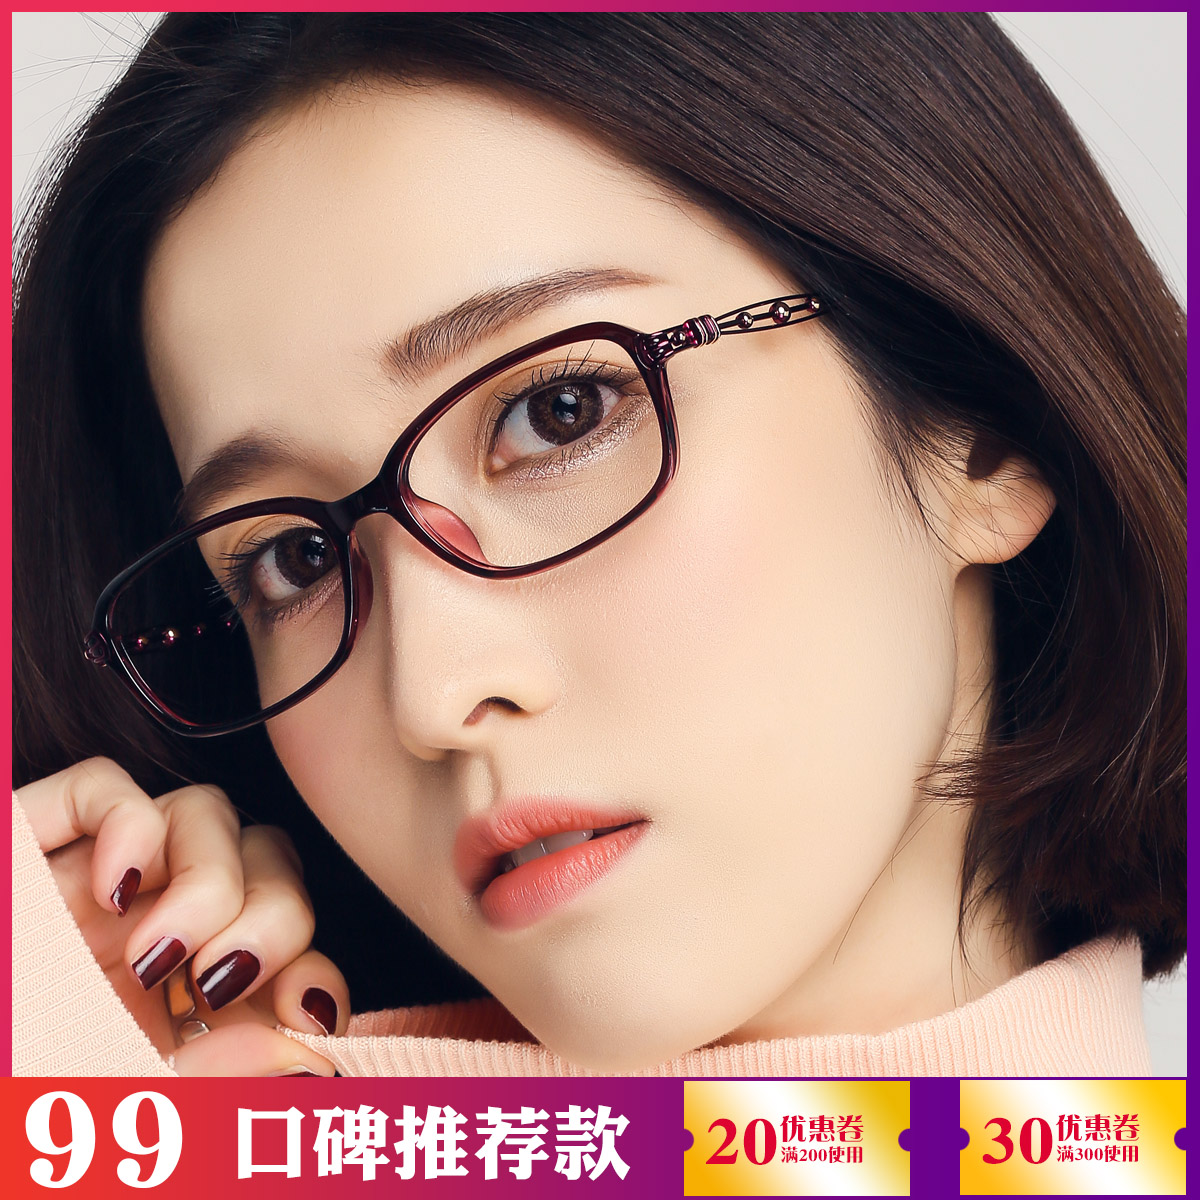 2857f3f8e5a ... lightbox moreview · lightbox moreview · lightbox moreview. PrevNext.  Finished myopia glasses female round face ...